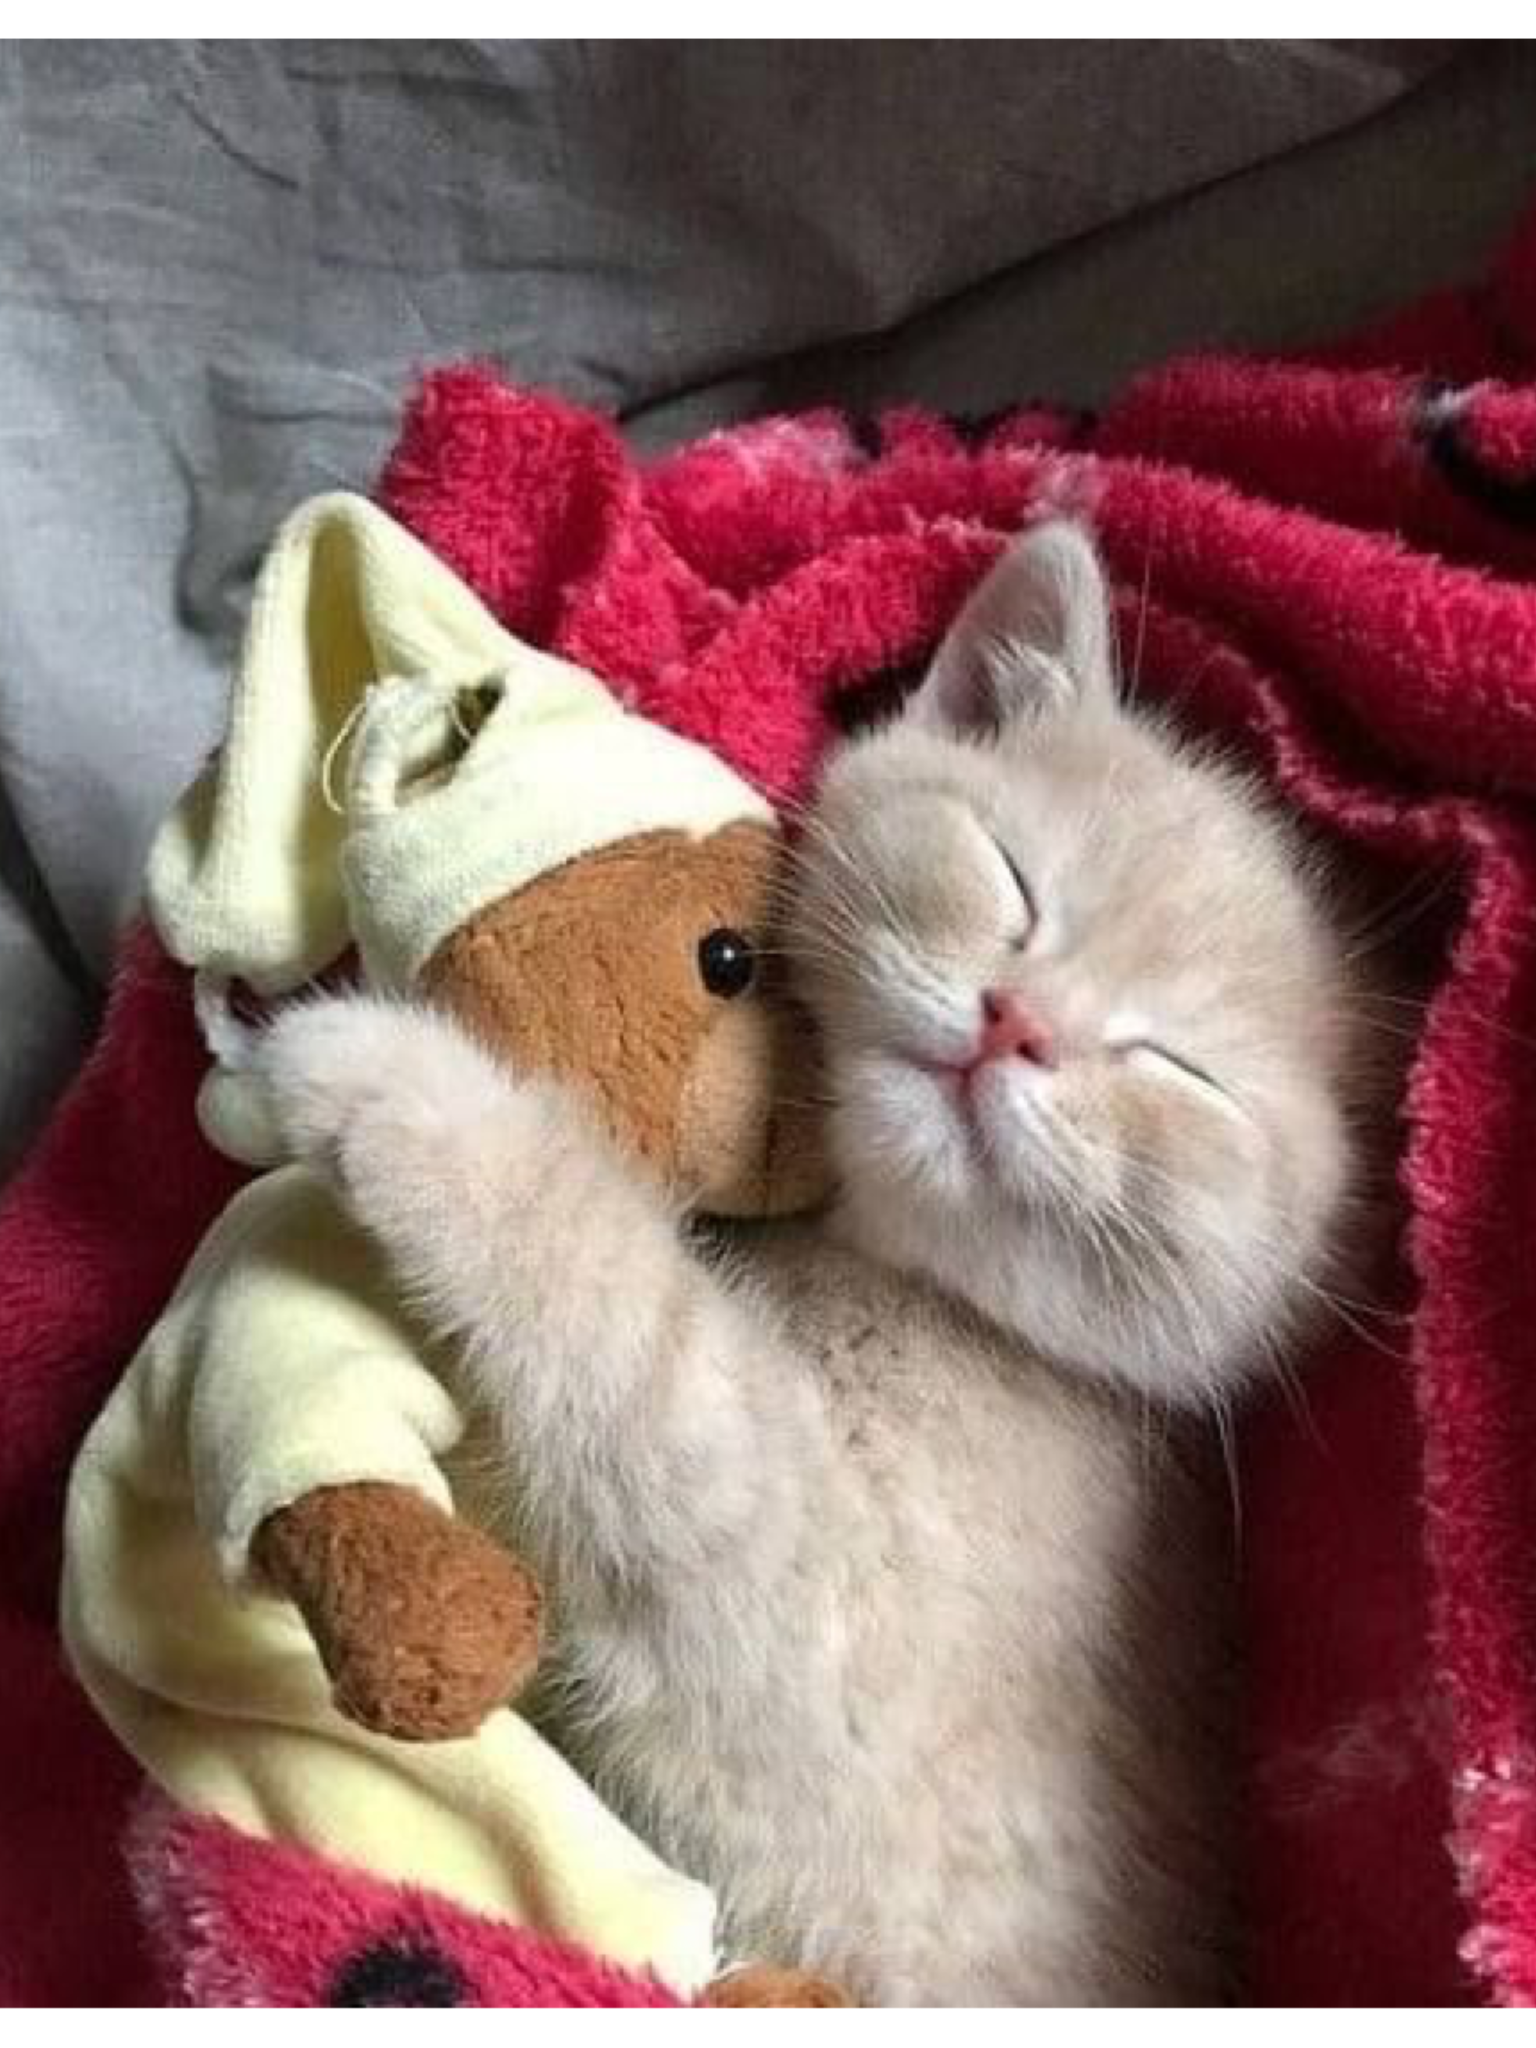 Everyone Loves A Teddy To Snuggle With Kittens Cutest Cute Animals Cute Cats